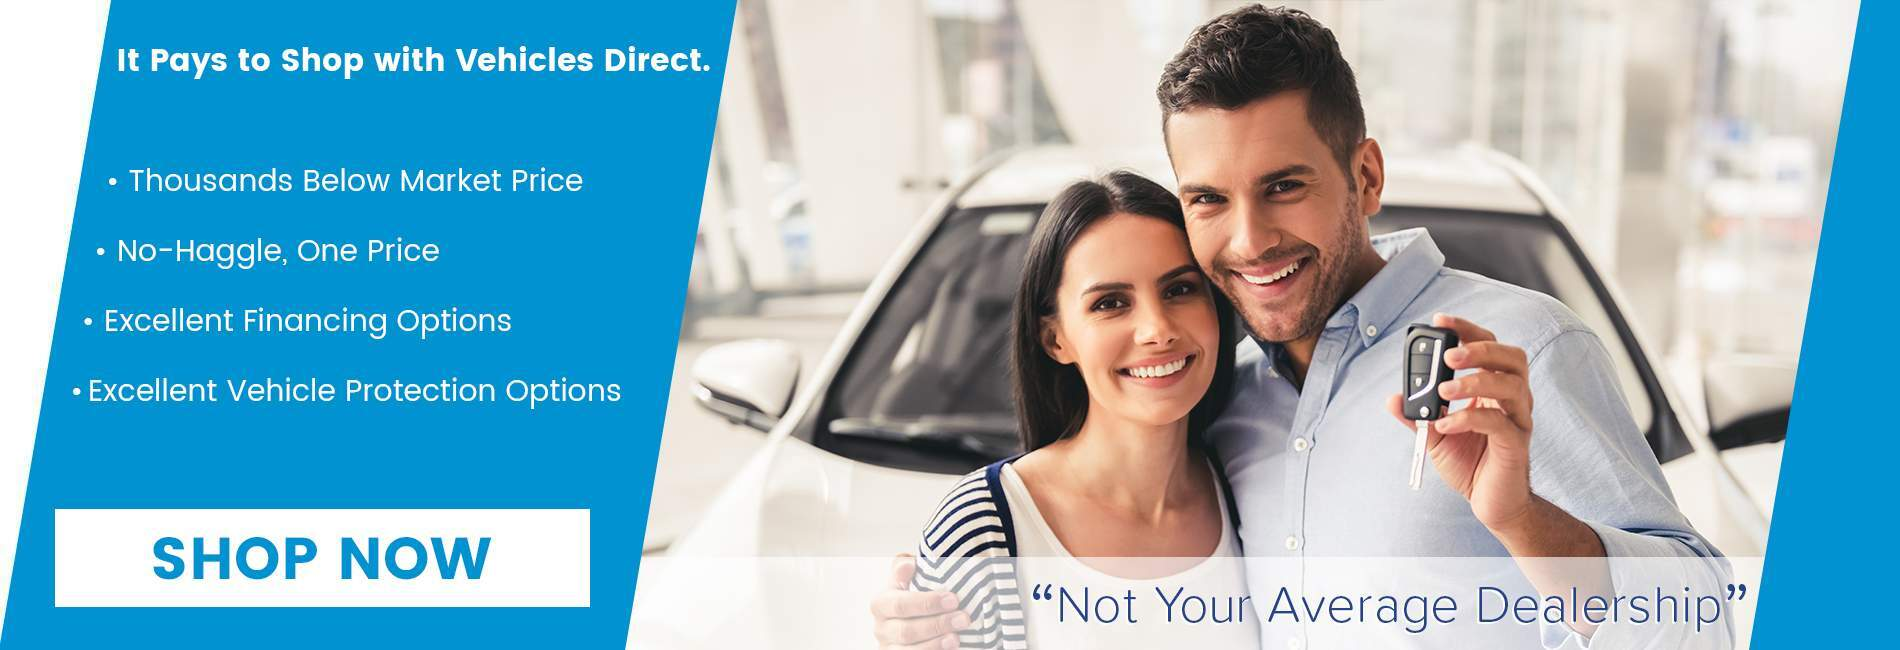 It pays to shop at Vehicles Direct thanks to upfront pricing in North Charleston SC